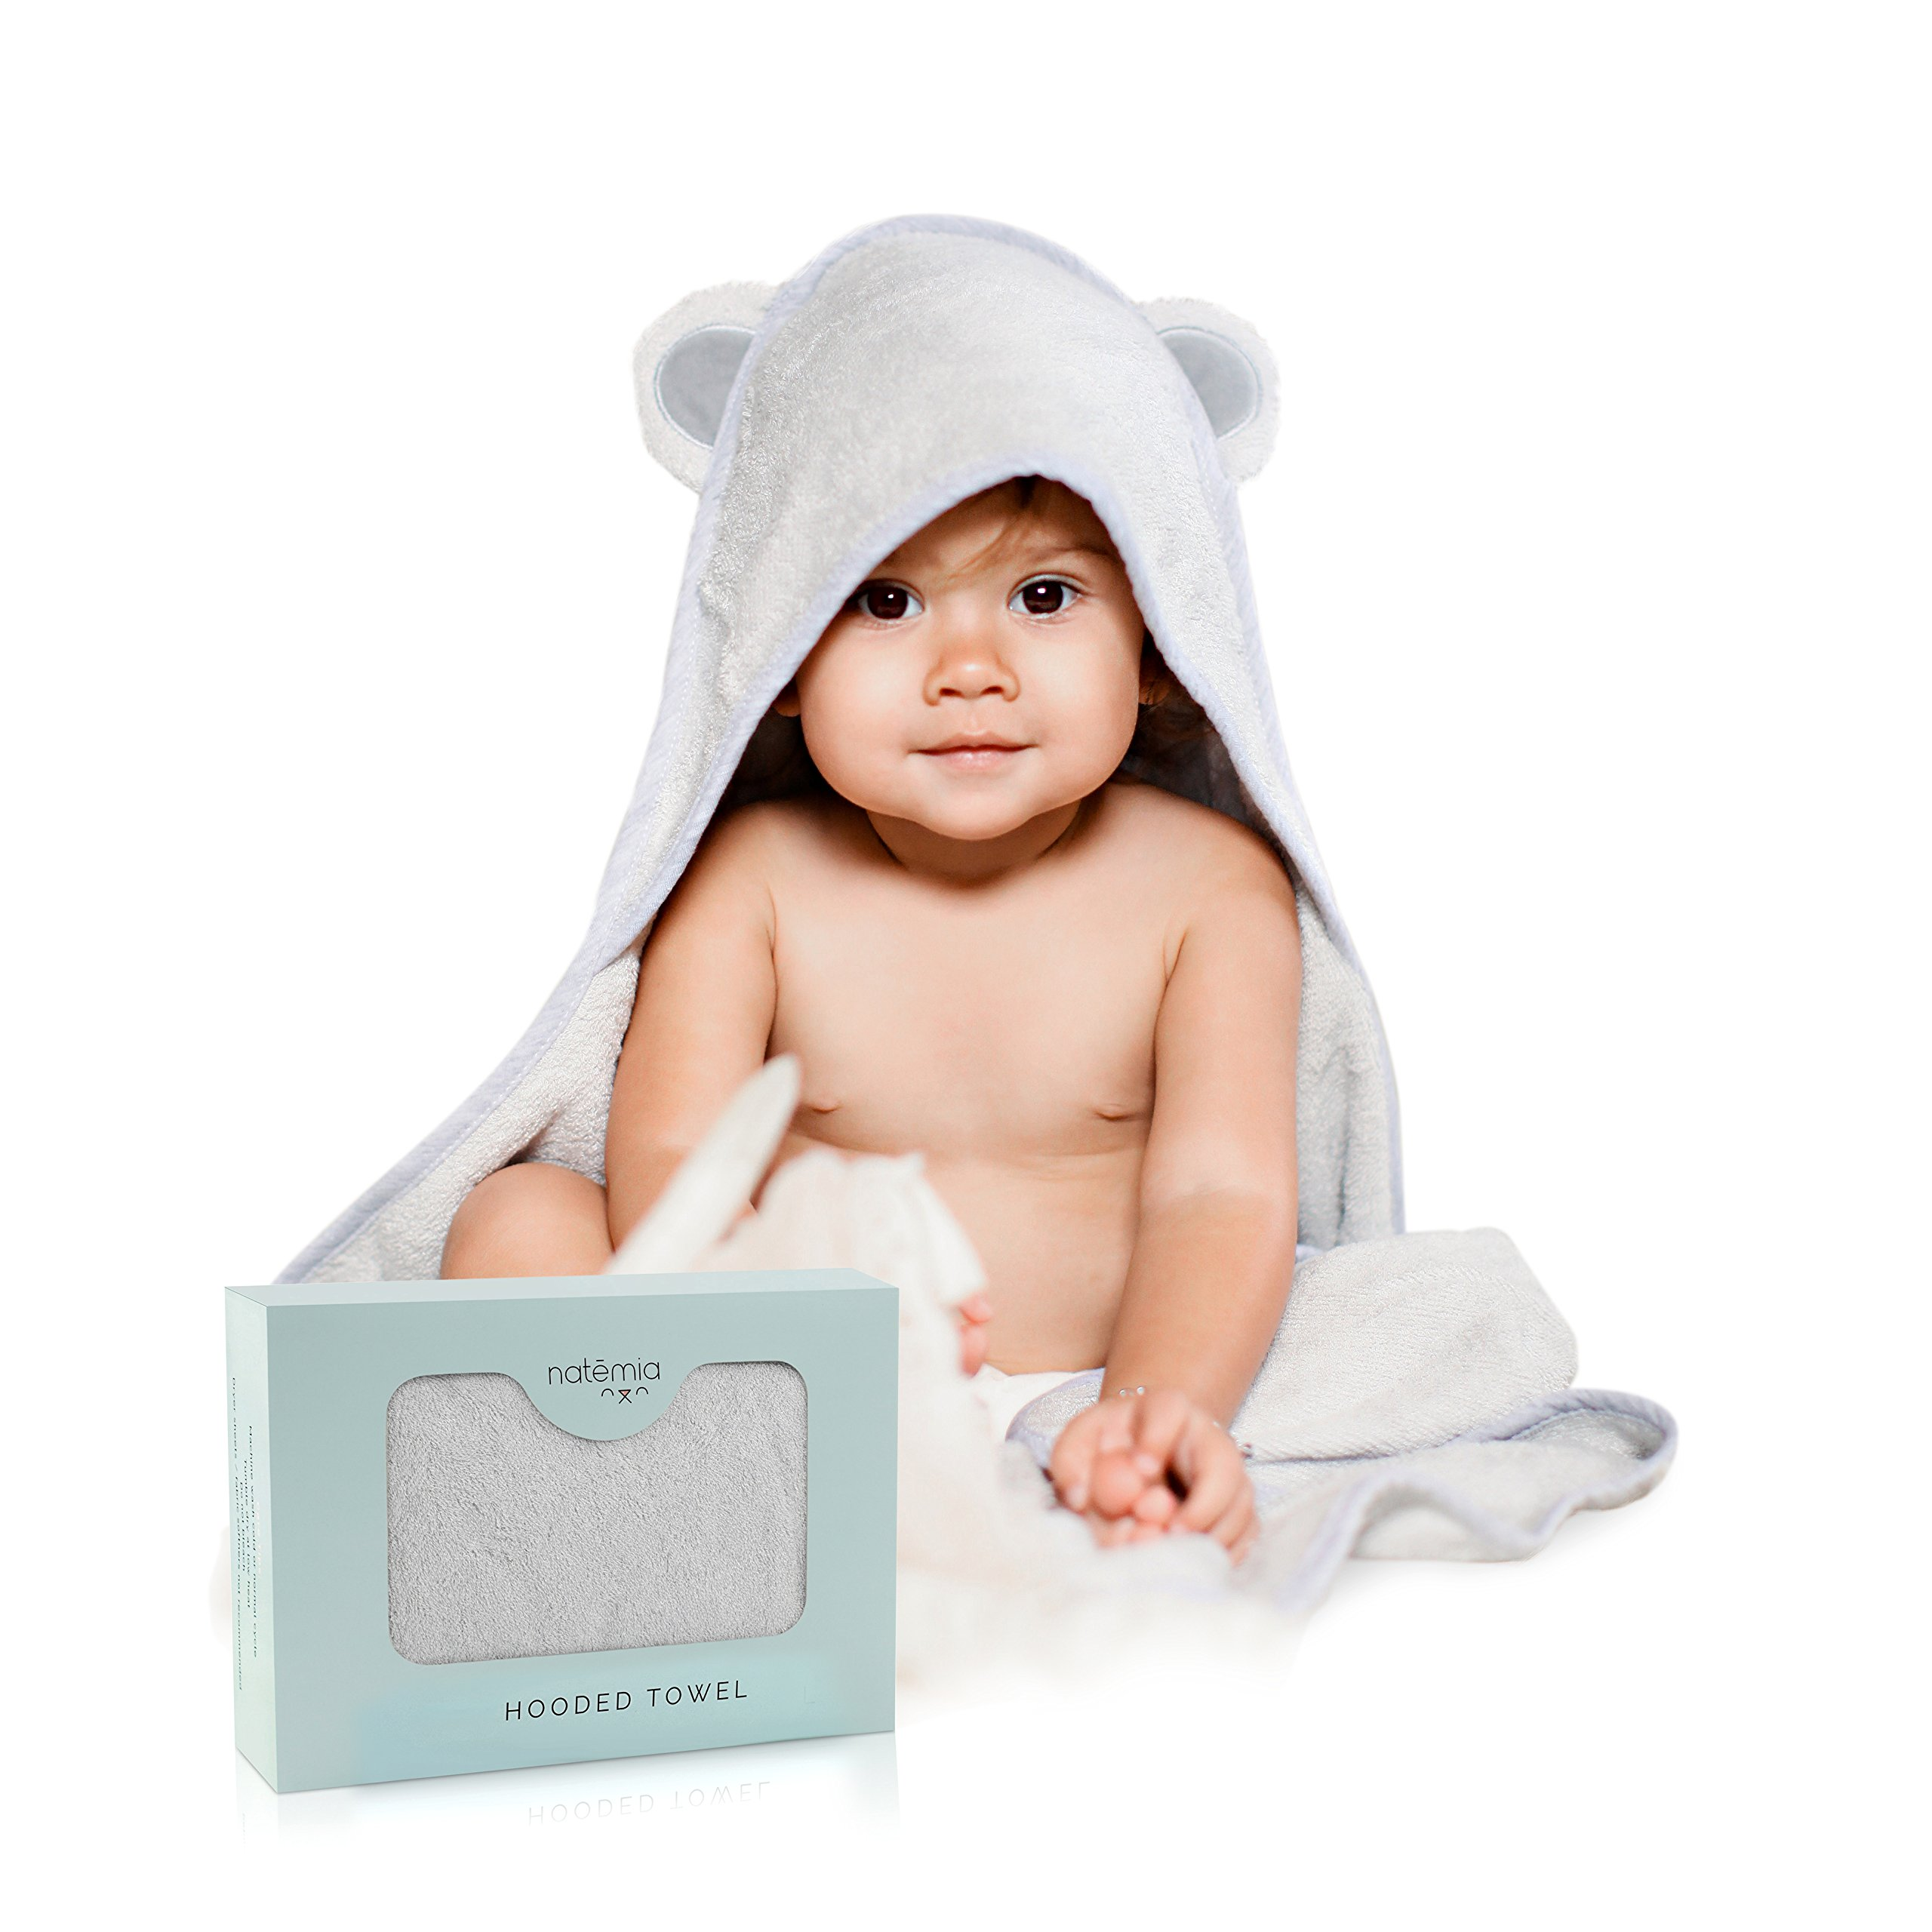 Natemia Rayon from Bamboo Hooded Baby Bath Towel   Highly Absorbent, Plush, Soft, Bacterial & Odor Resistant Towel   for Boys, Girls, Newborns & Infants  Great Baby Shower Gift